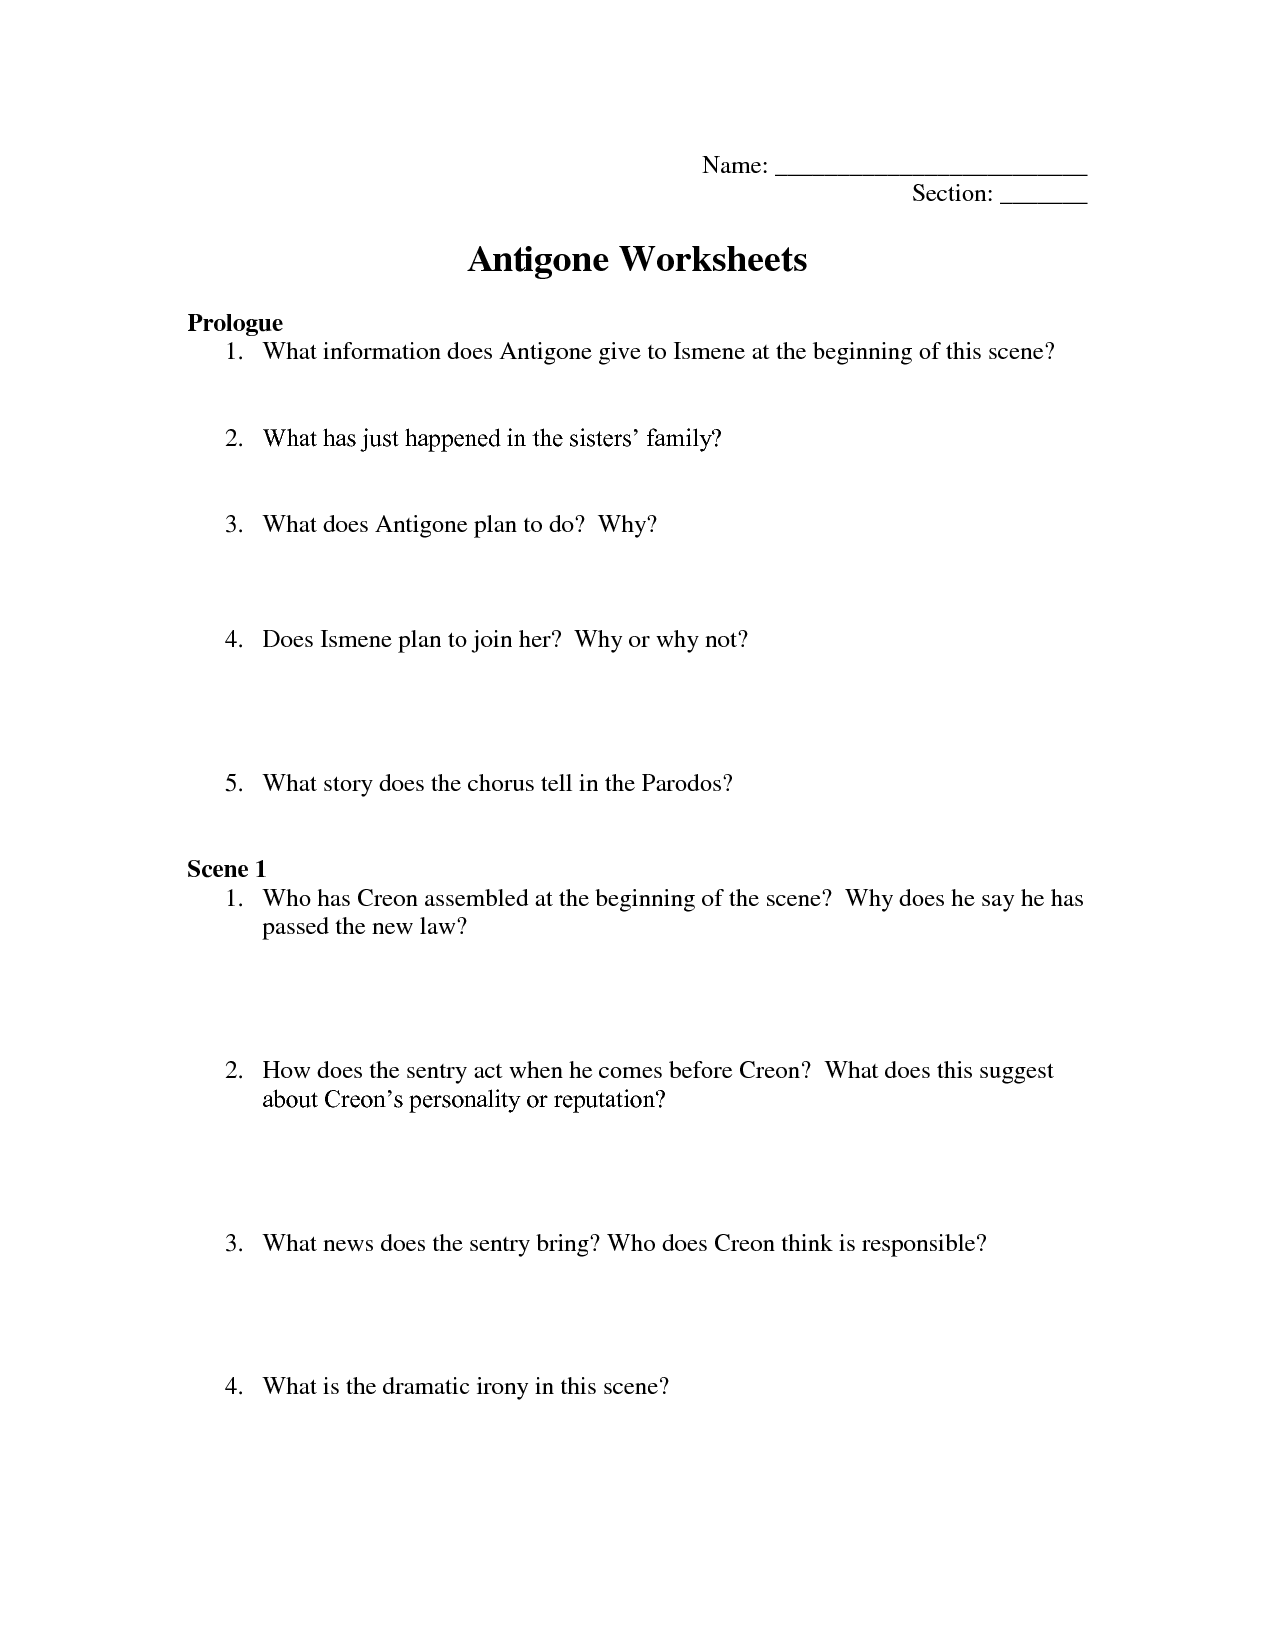 Antigone Worksheets Answers Here Saz